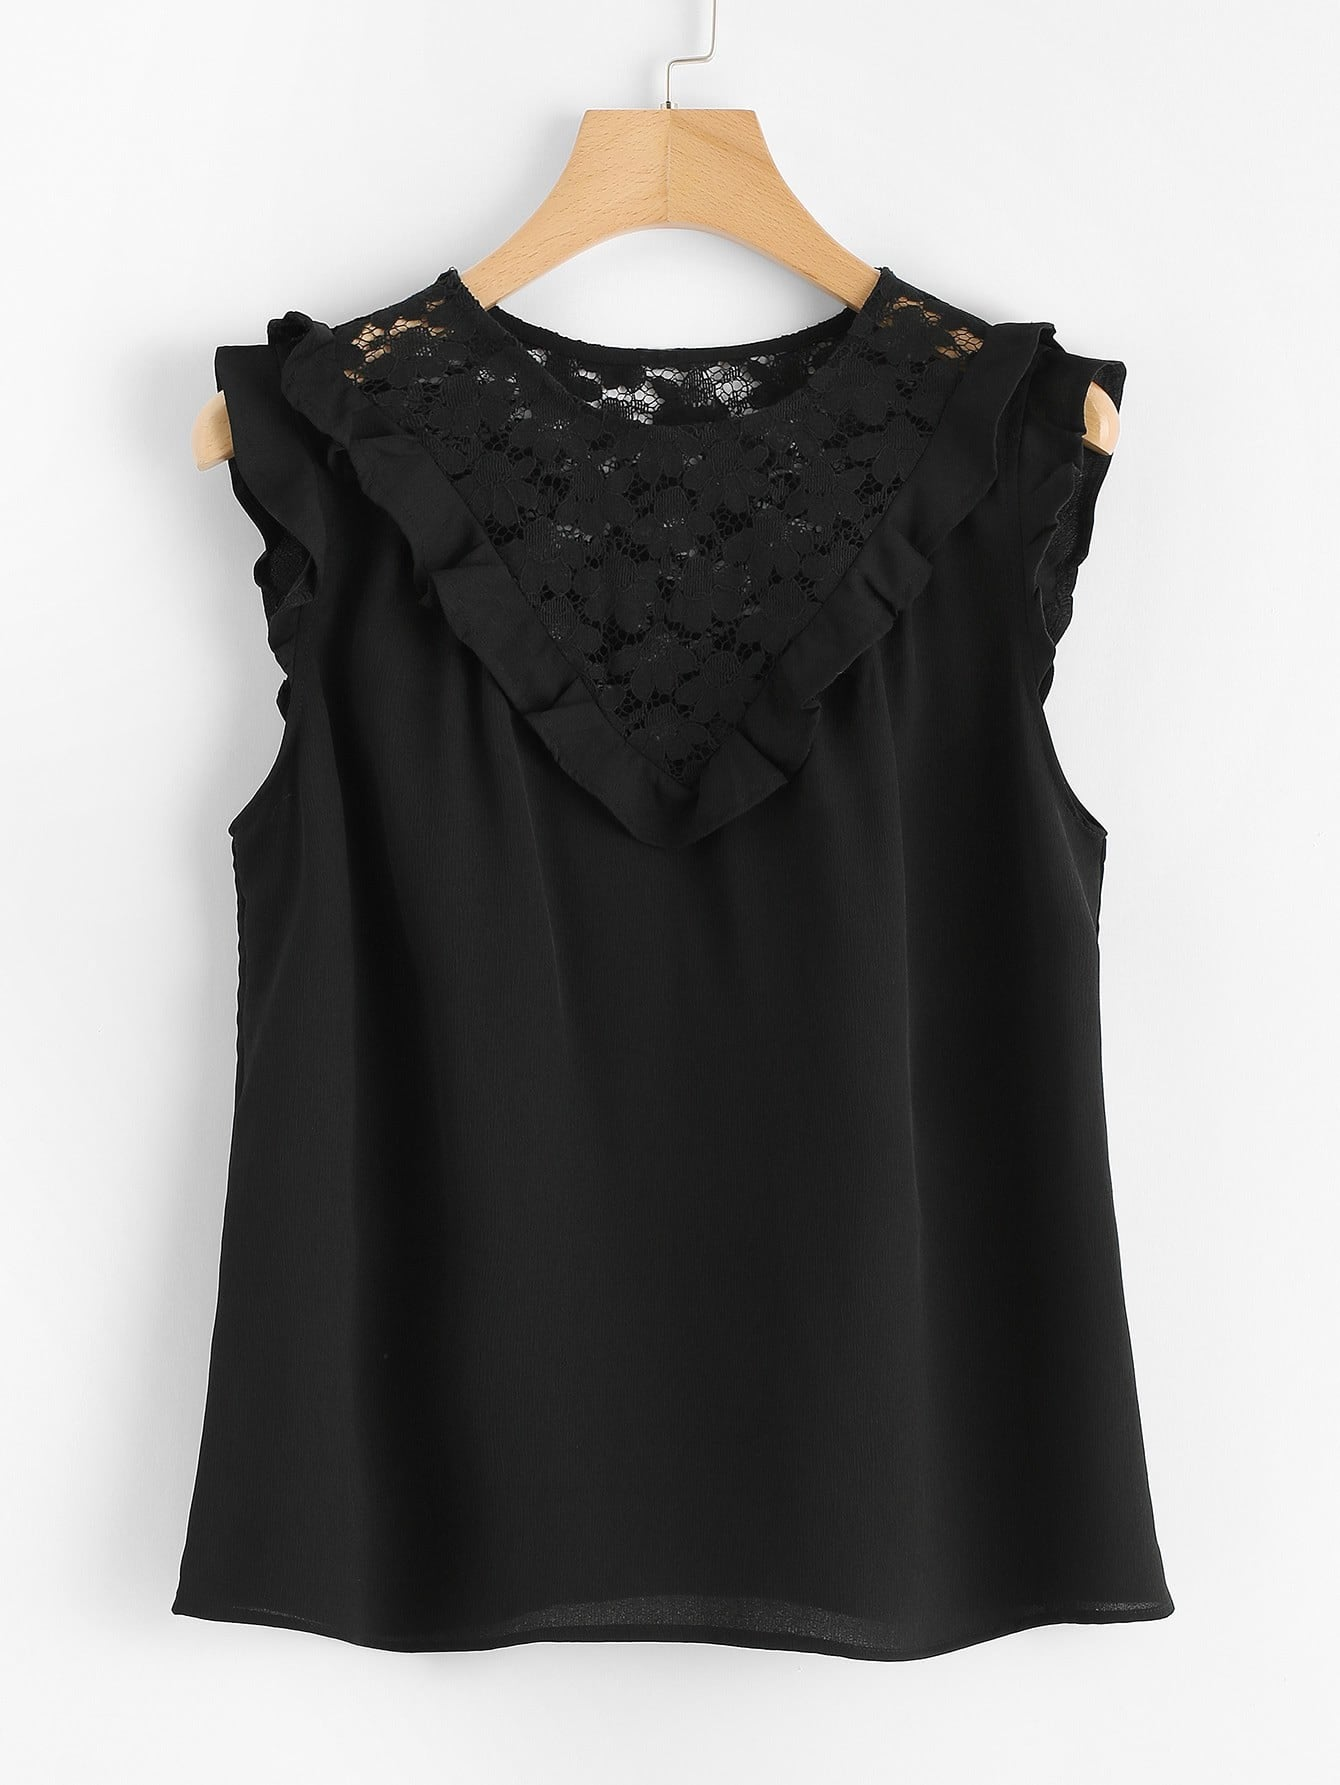 Floral Lace Insert Ruffle Detail Top lace insert fit